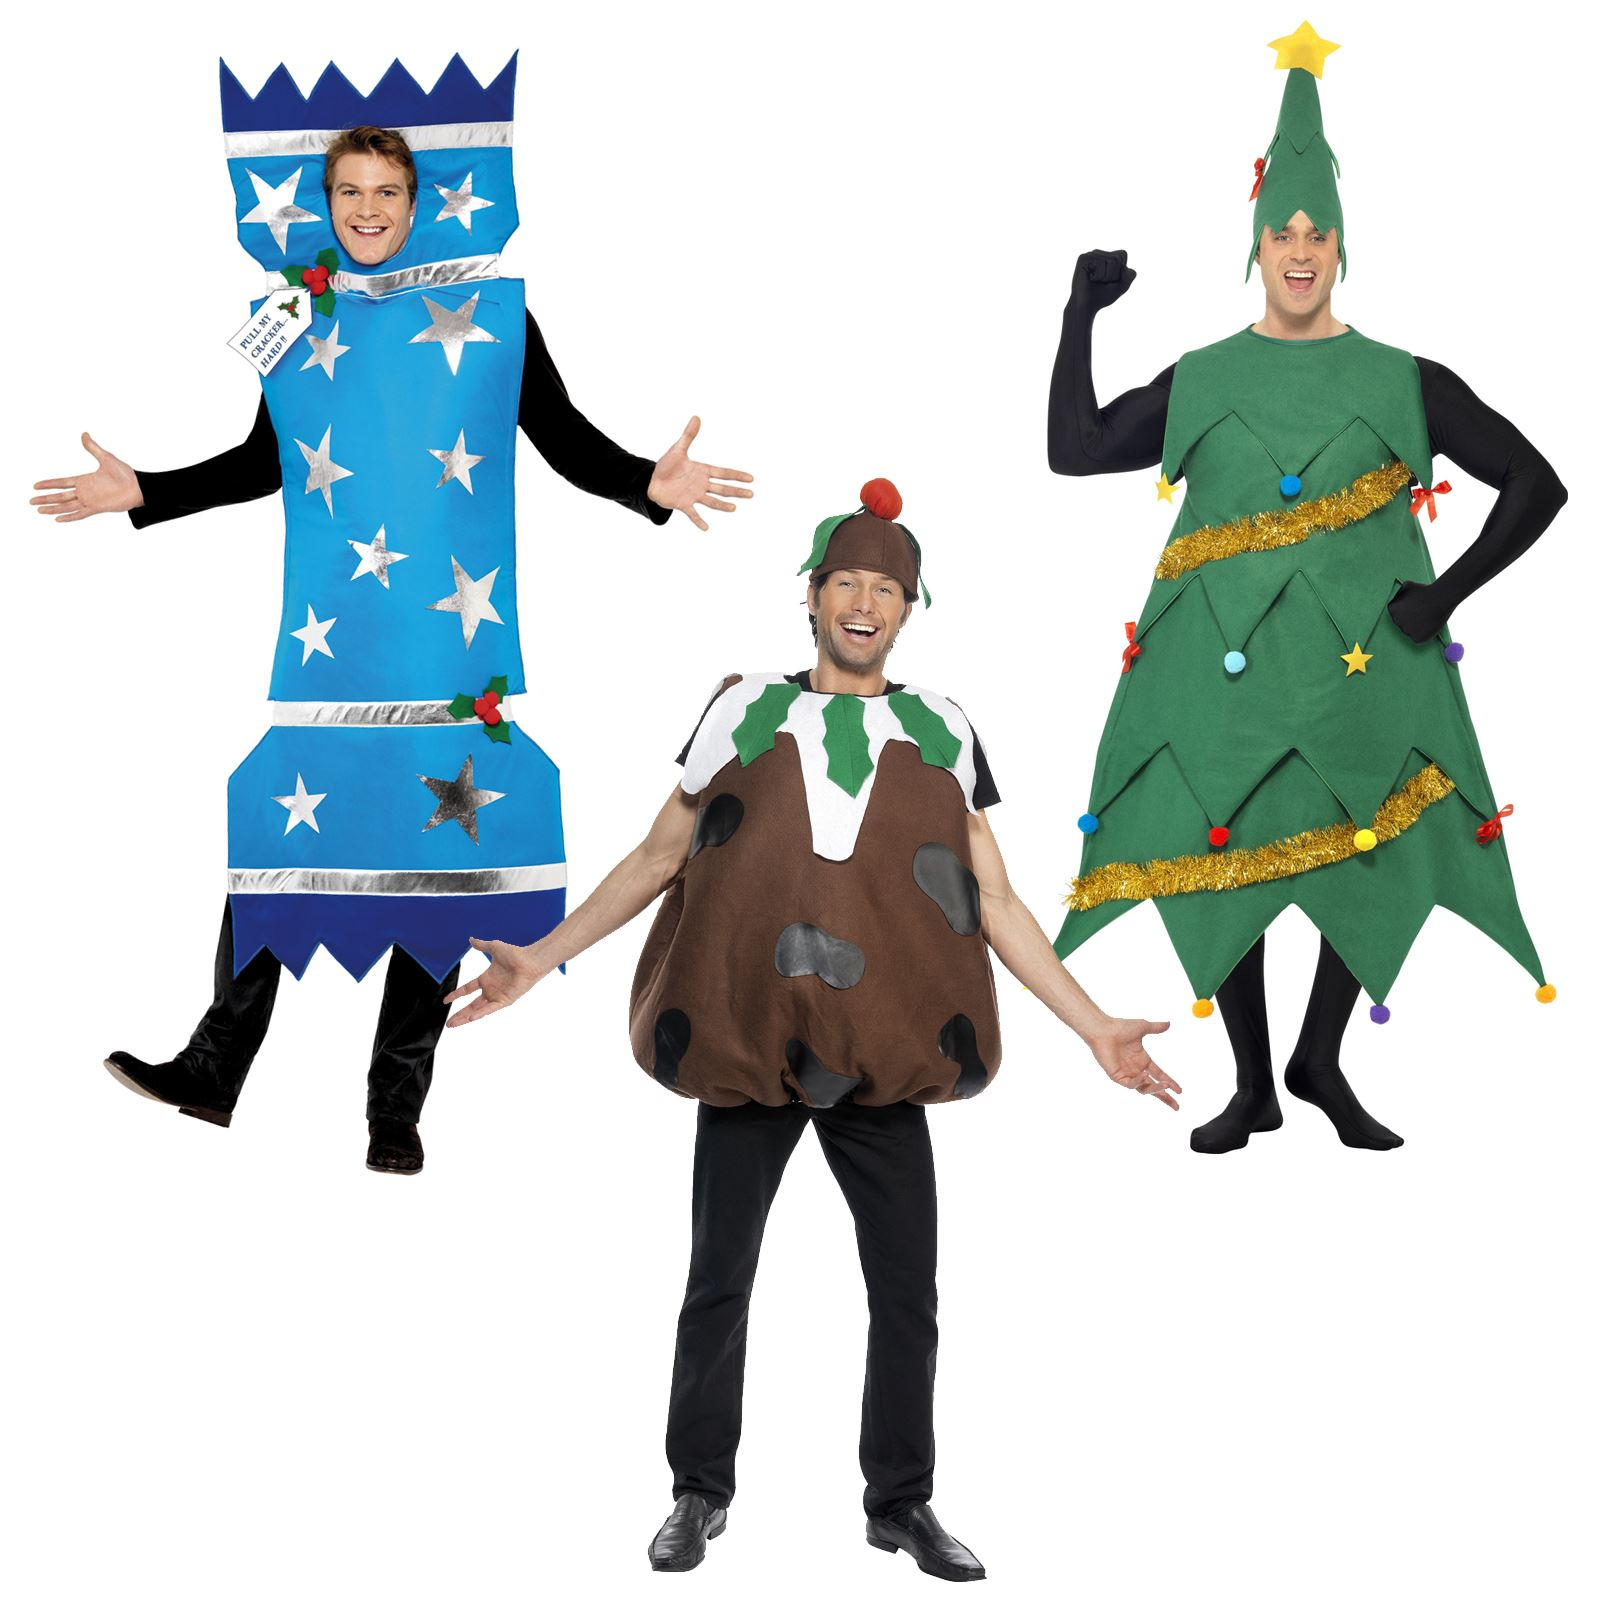 Christmas Fancy Dress Funny.Details About Adults Mens Novelty Christmas Fancy Dress Funny Costume Xmas Work Party Stag M L